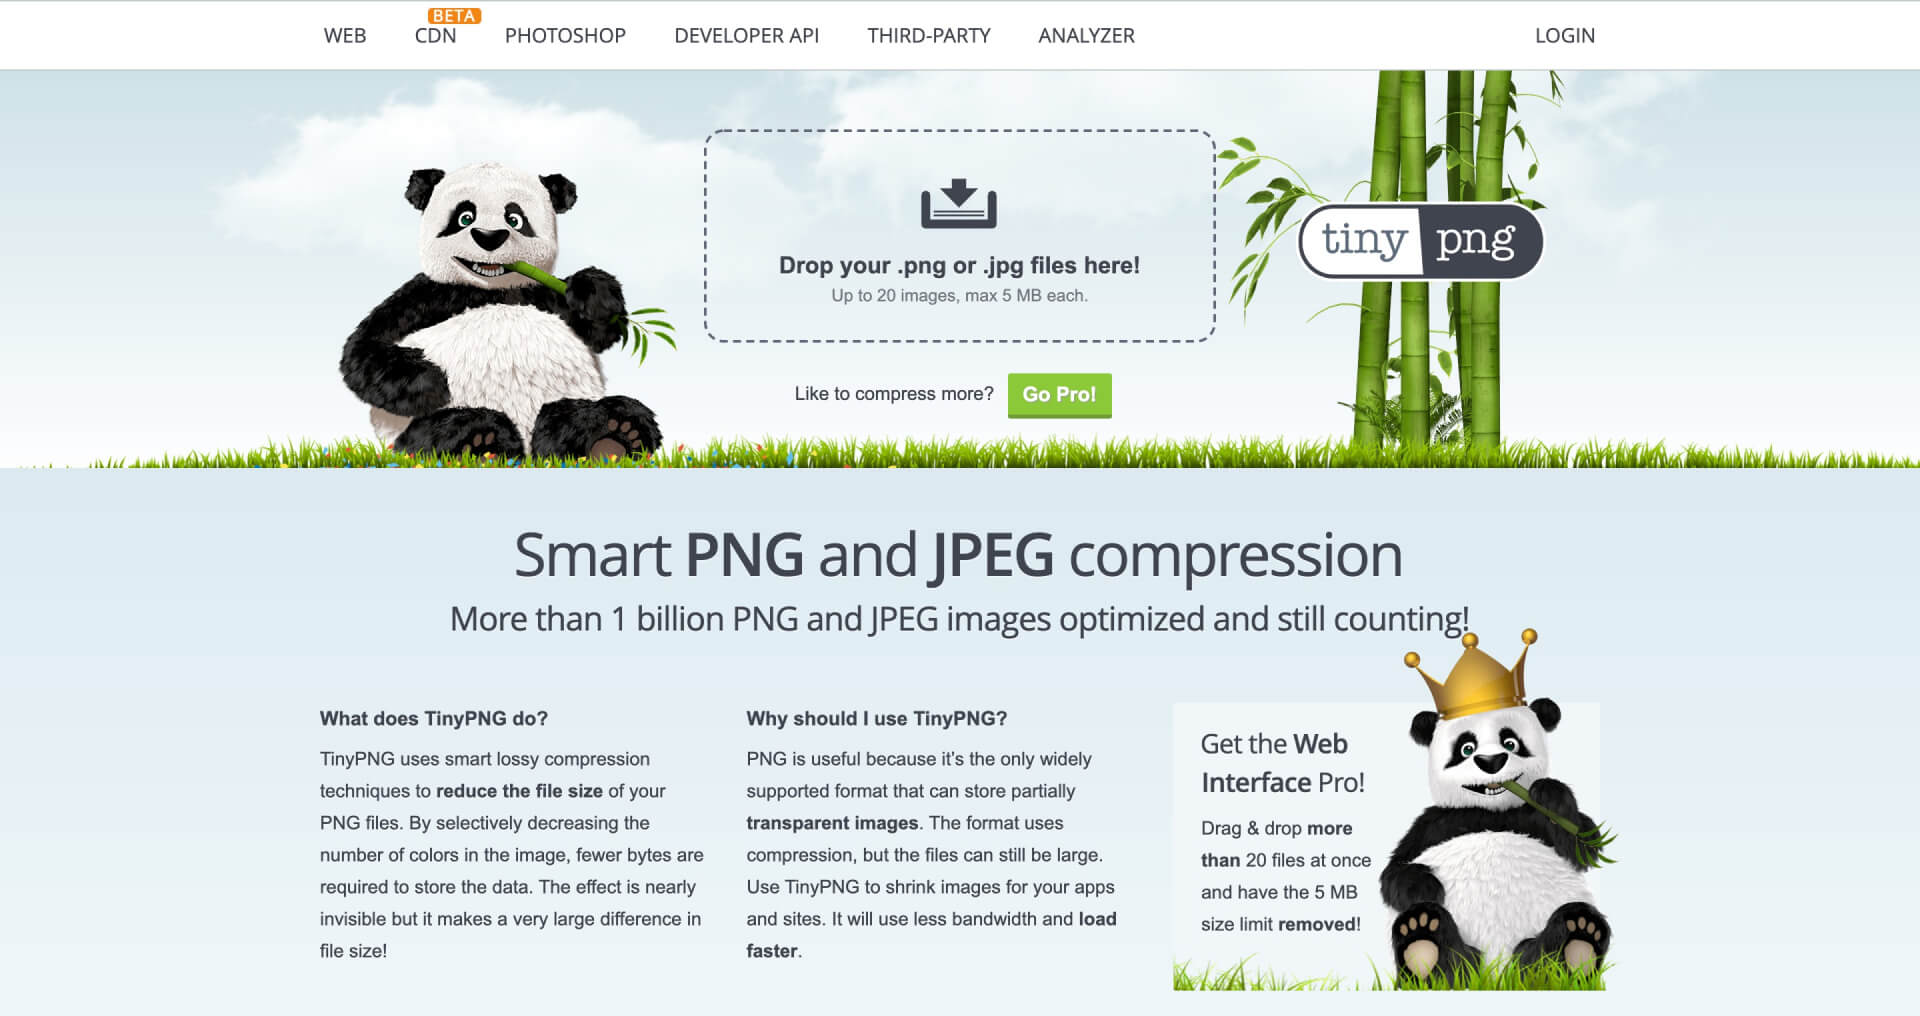 TinyPNG – Compress PNG images while preserving transparency-IrvingLab 爾文實驗室